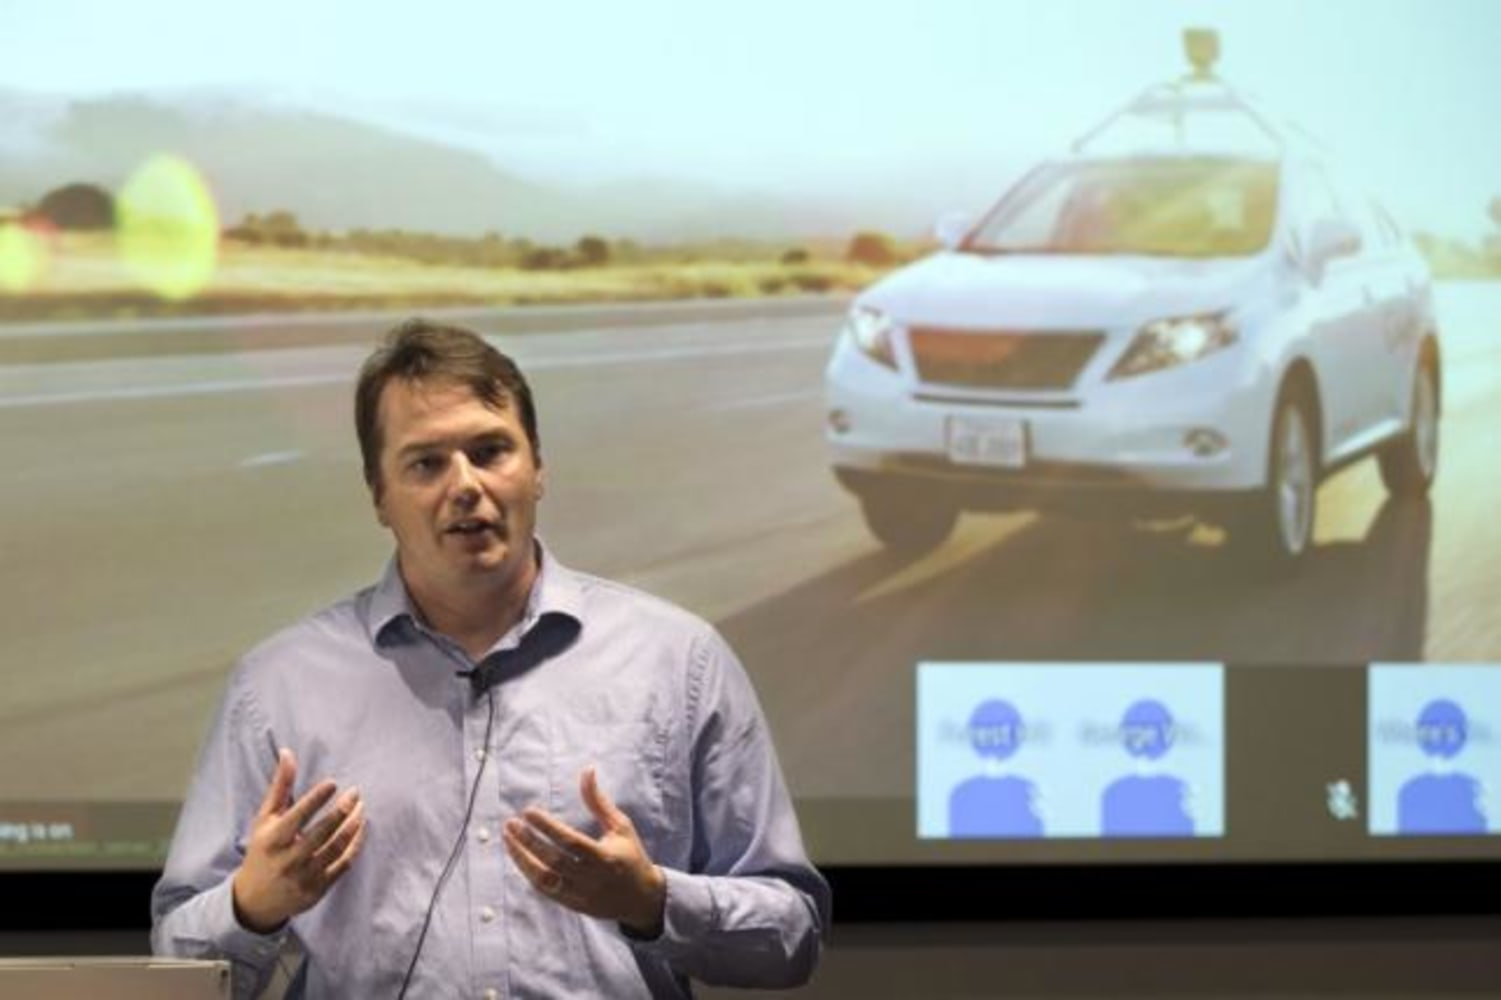 Chris Urmson, leader of Google's self-driving vehicle project, to step down